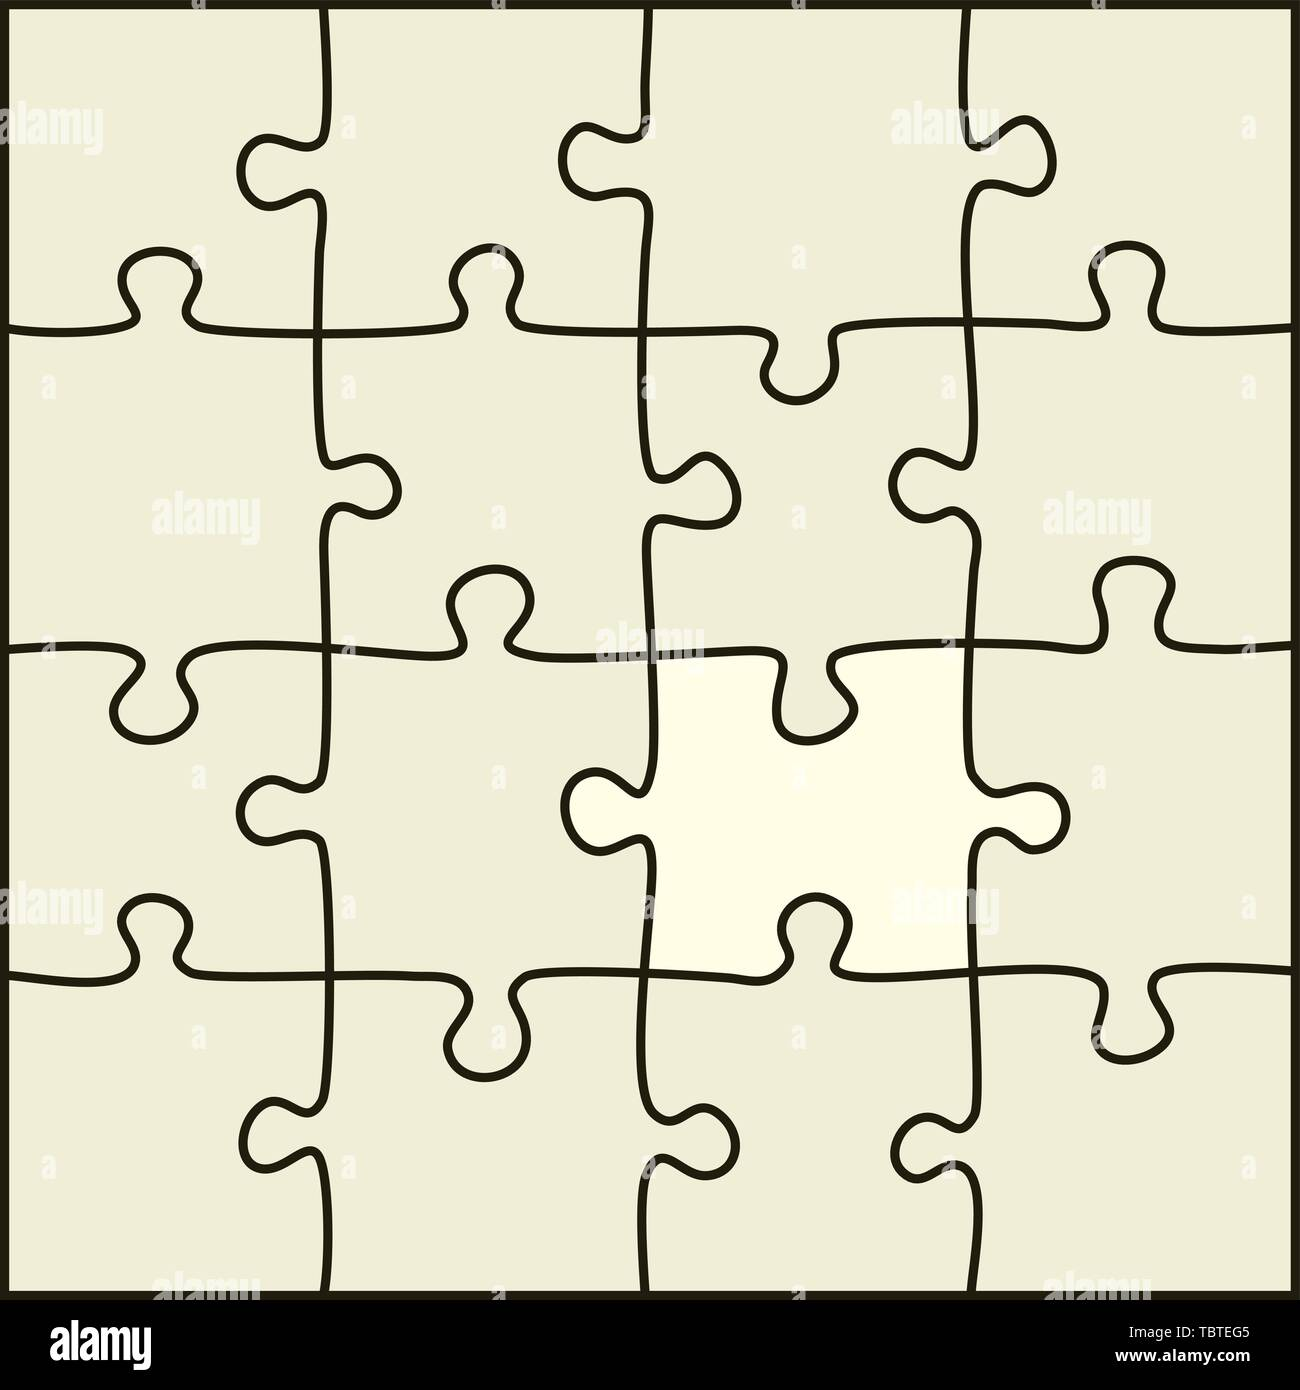 Vector illustration. Simple puzzle pieces that can separate each one. Stock Vector